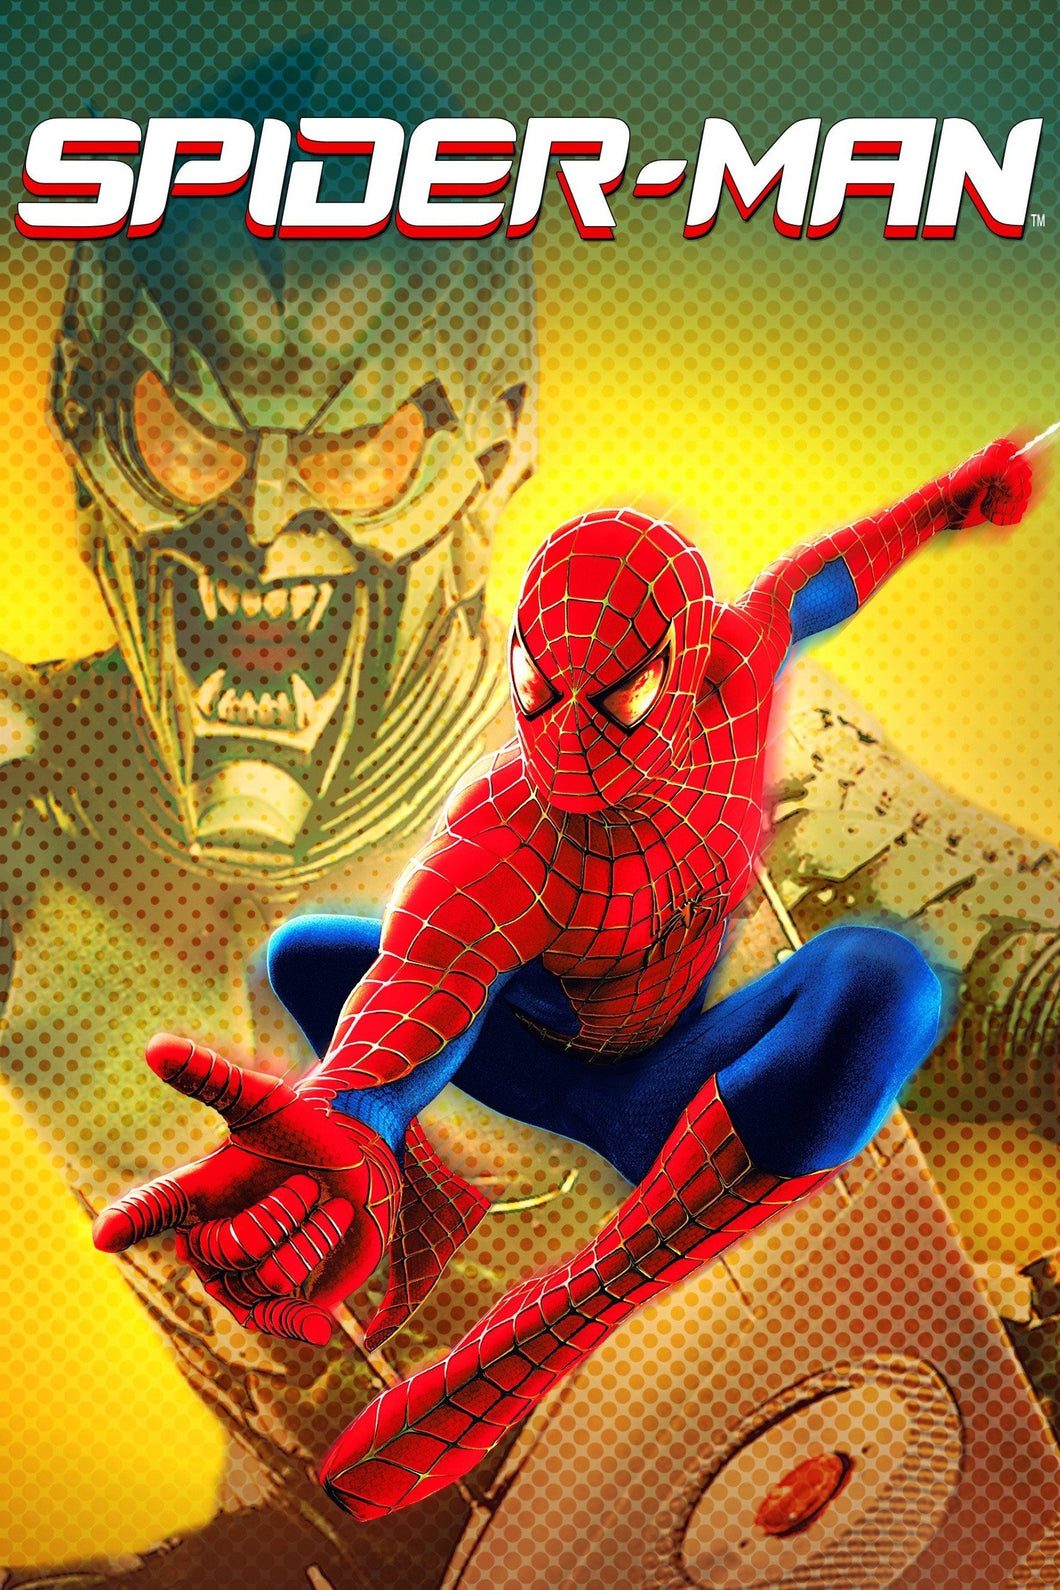 Spider-Man | HD Movies Anywhere Code Ports to Vudu, iTunes, GP - Movie Sometimes